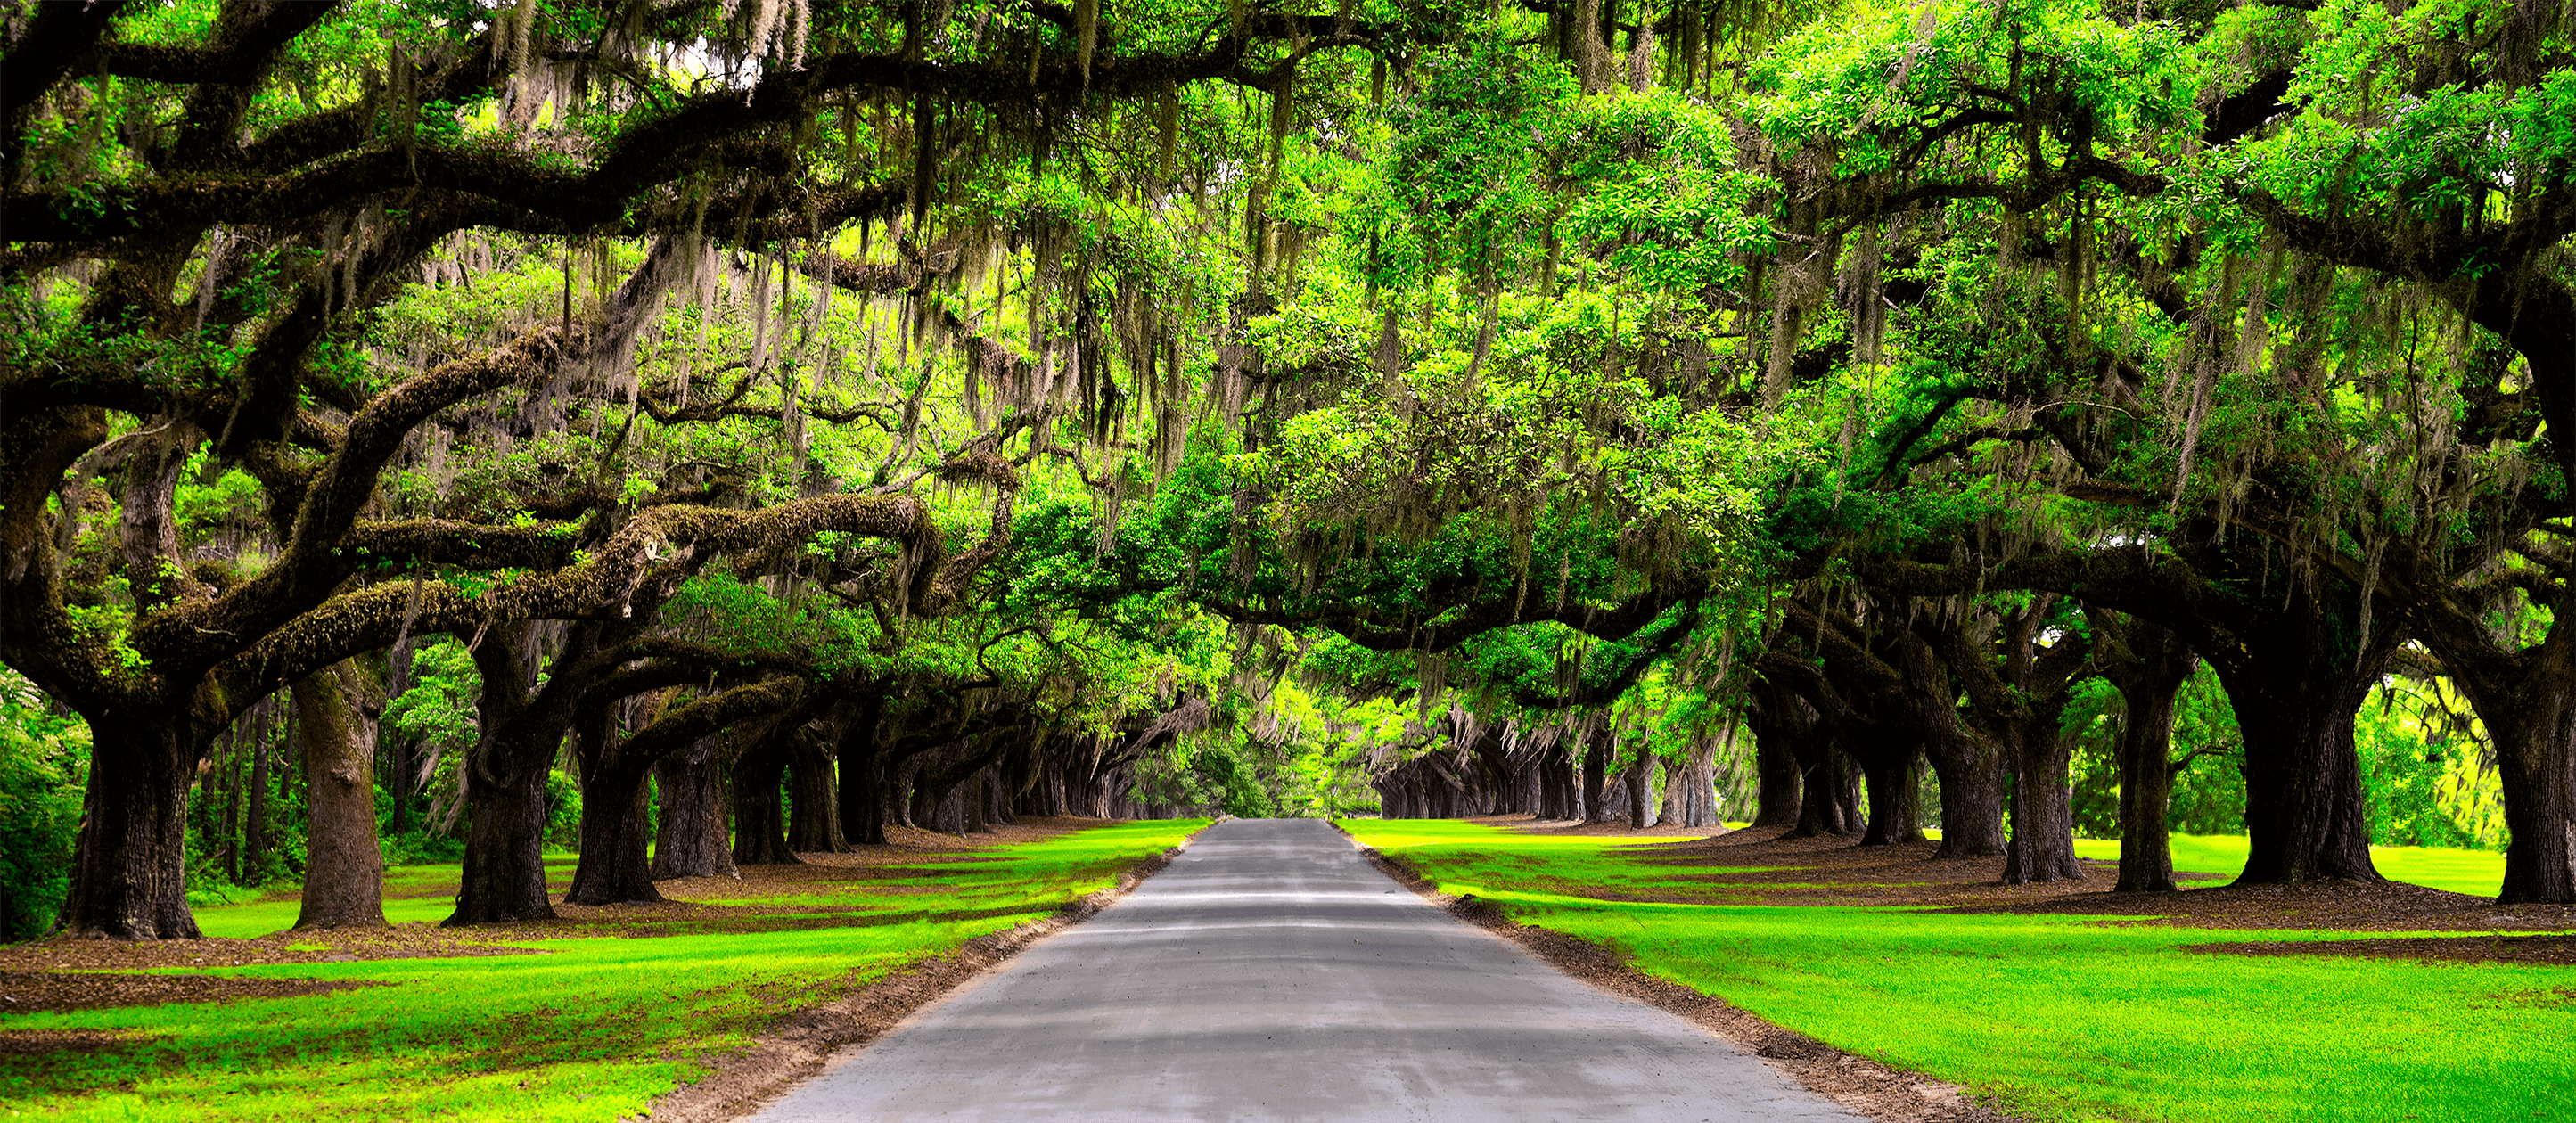 Image of lush tree-lined road stretching to the horizon